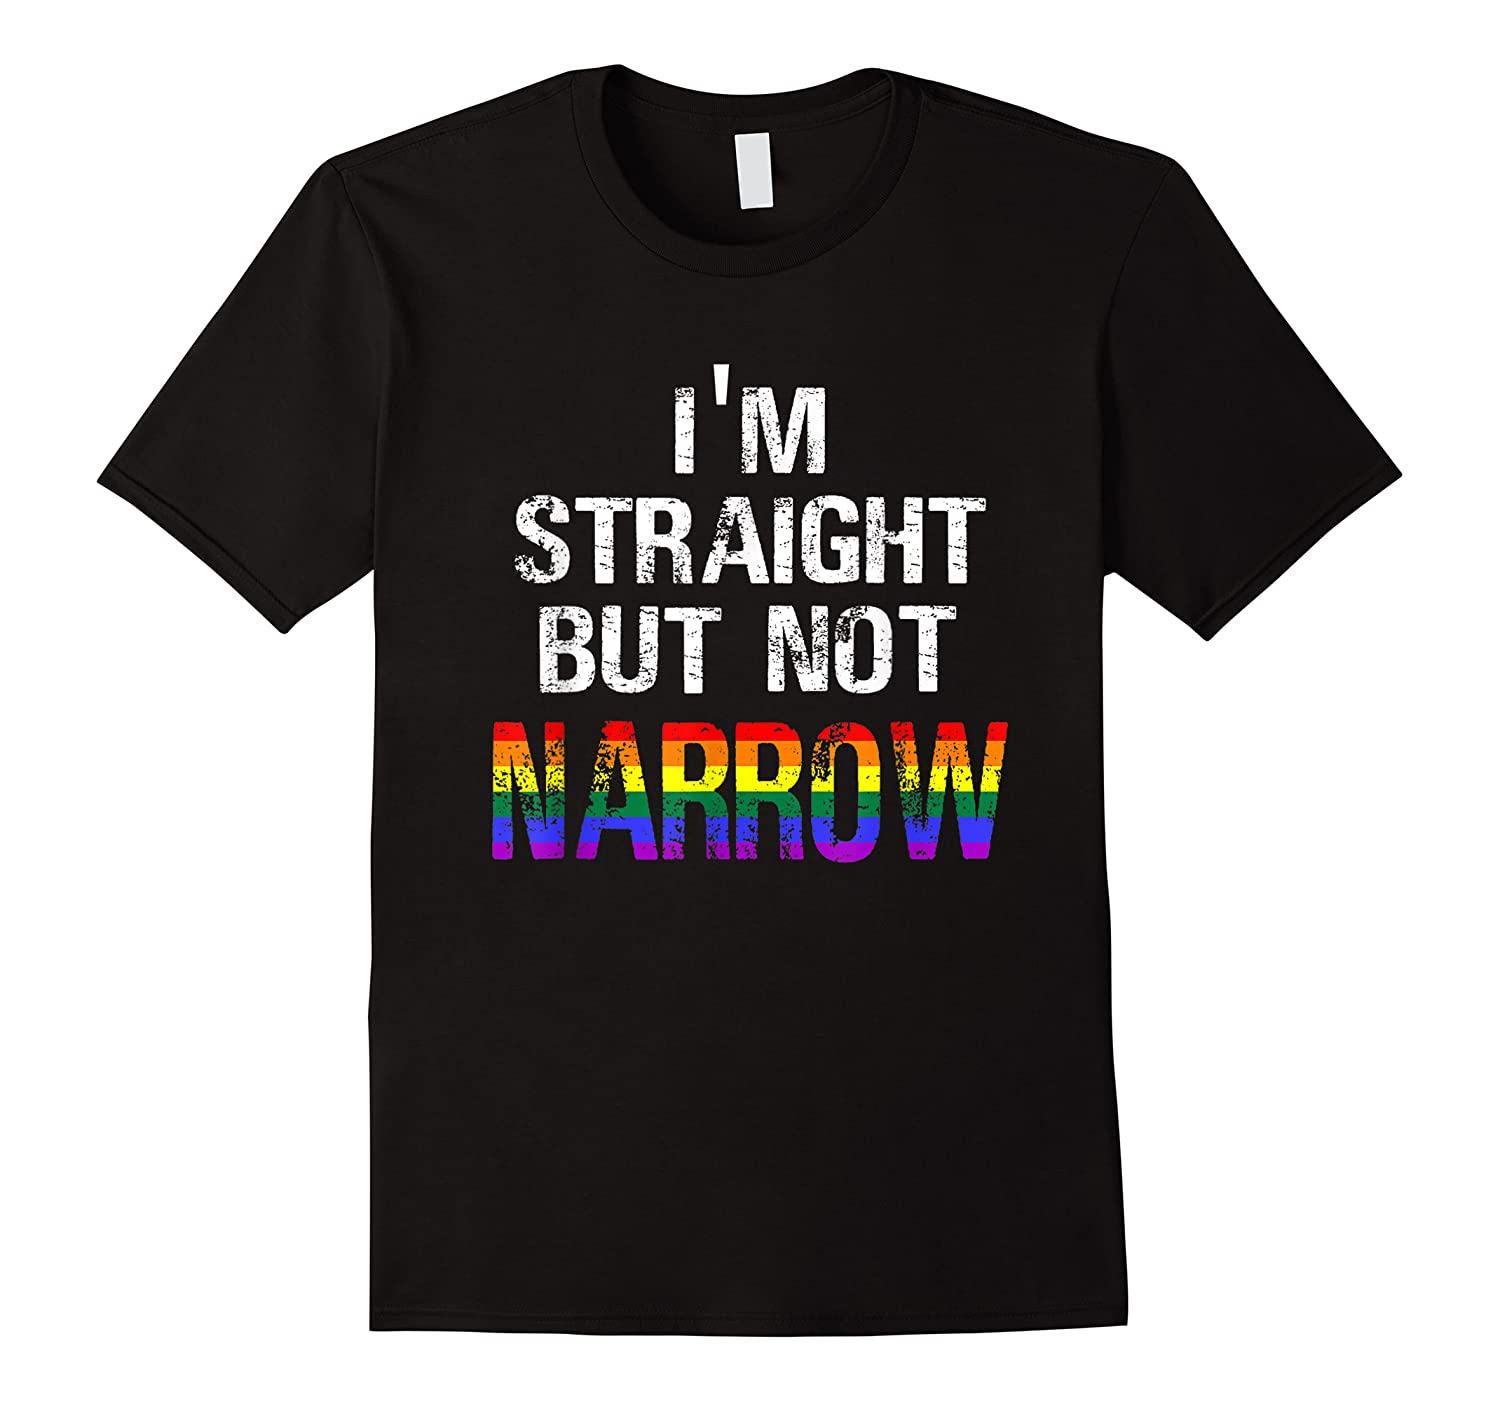 Straight Ally Lgbt Support Shirts